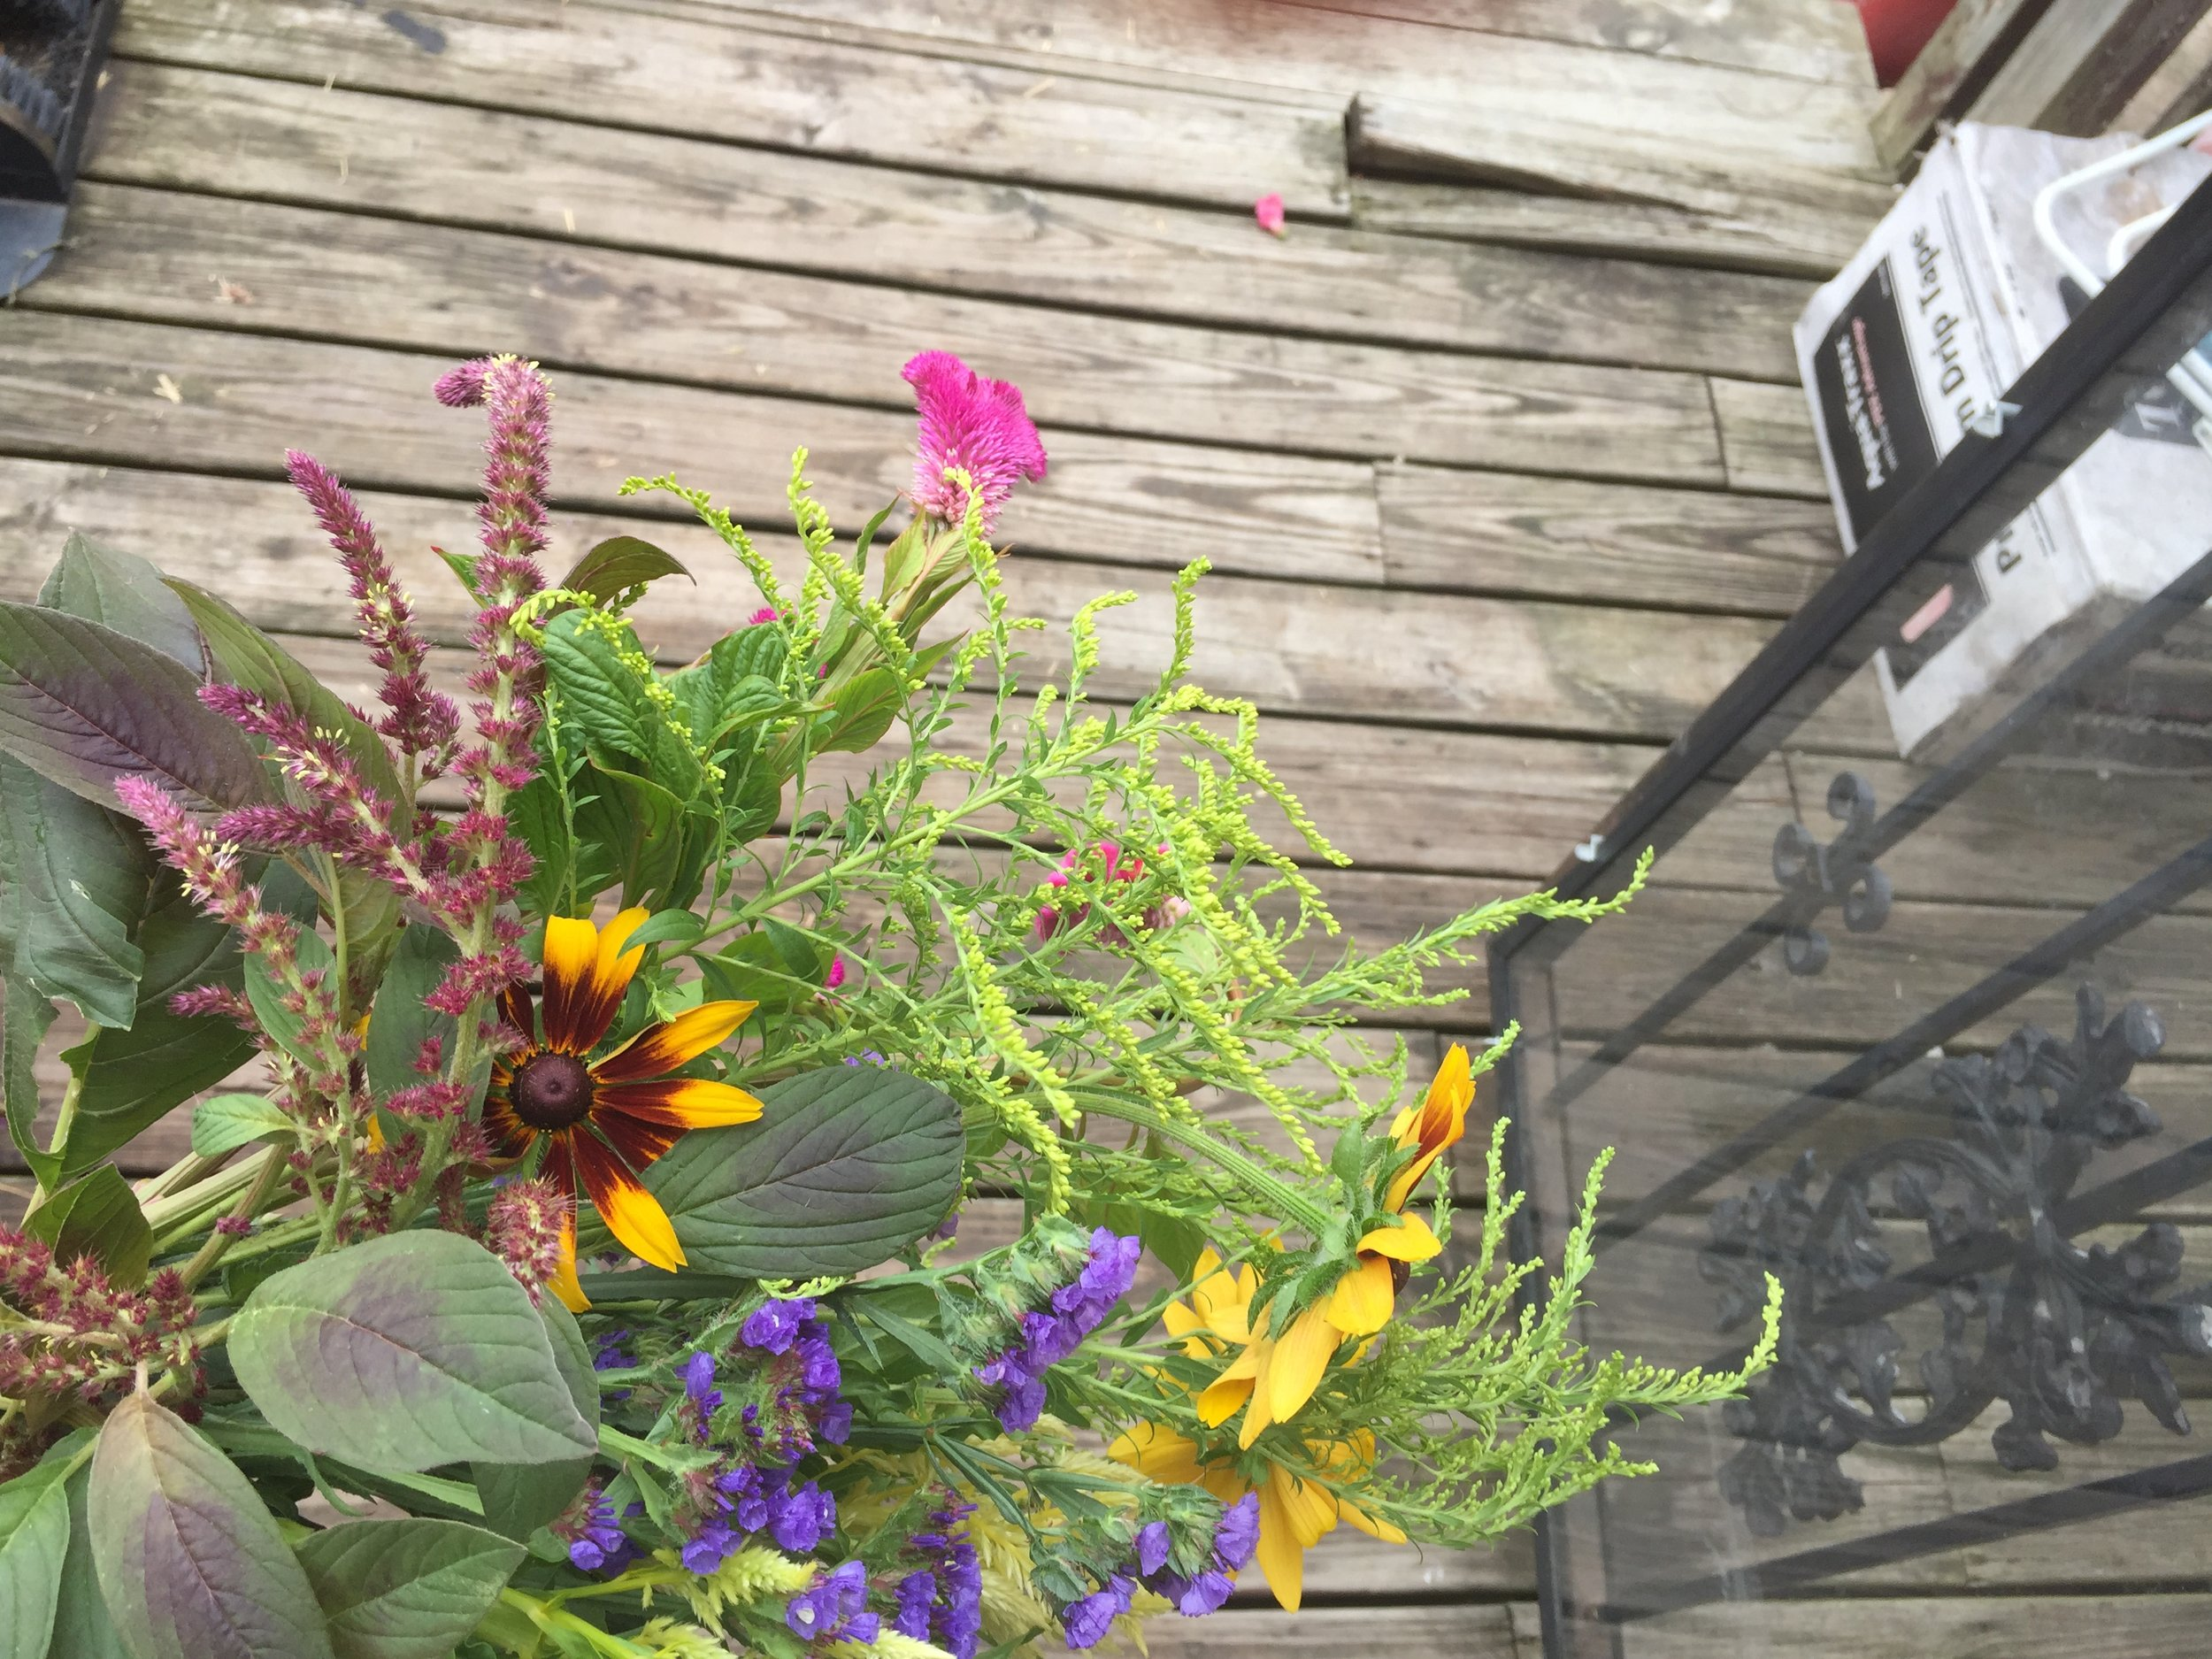 Amaranth, celosia, young goldenrod (a great emcee name waiting for someone), and statice.